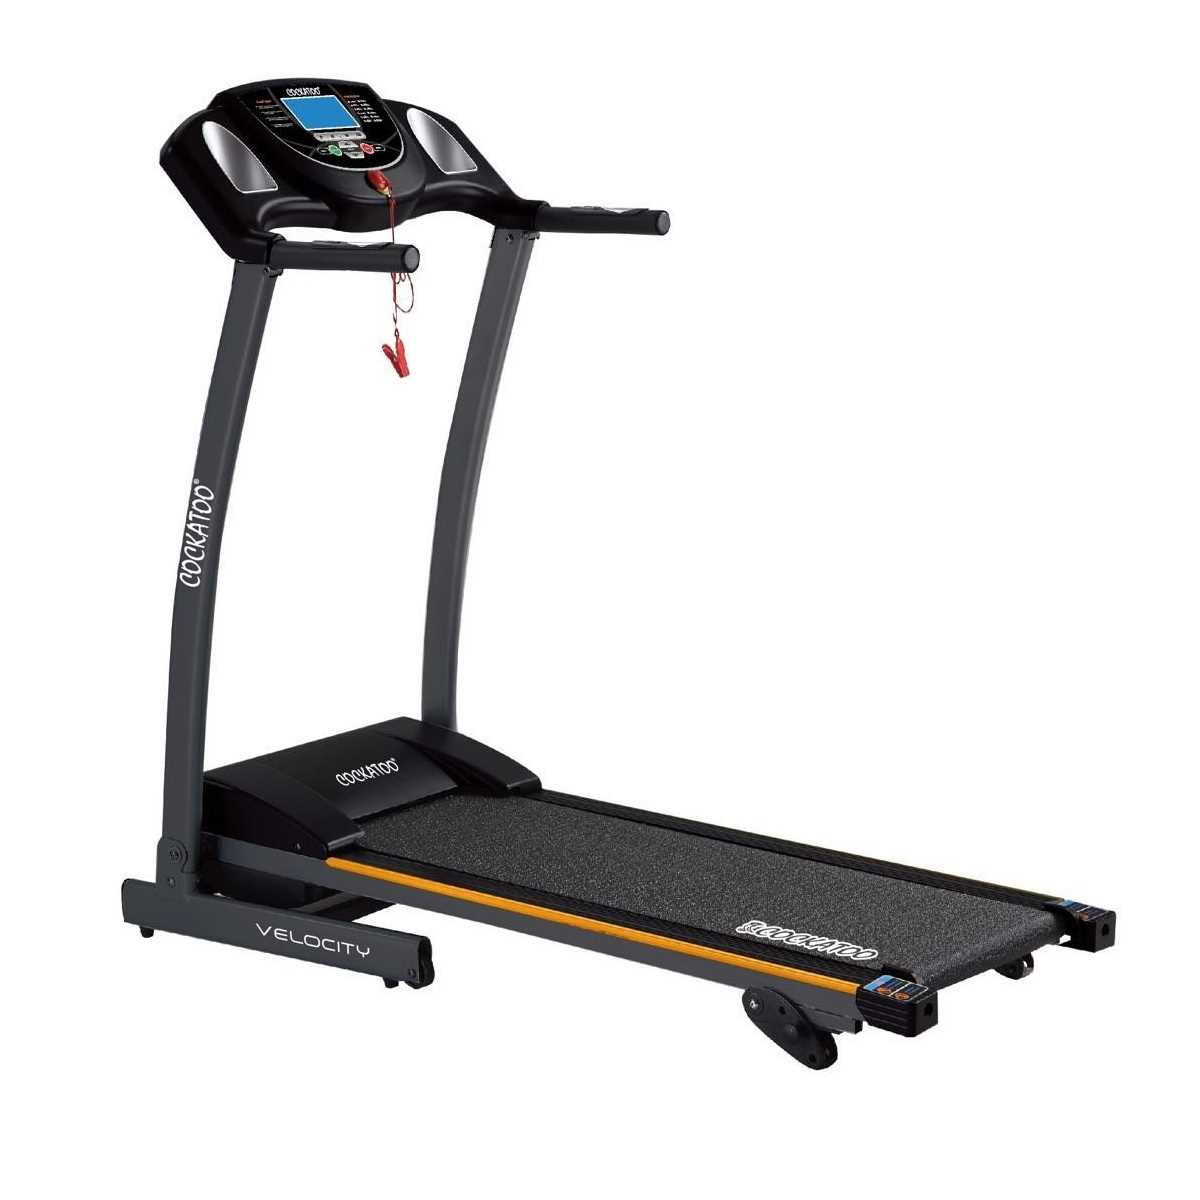 Cockatoo Velocity Motorized Treadmill